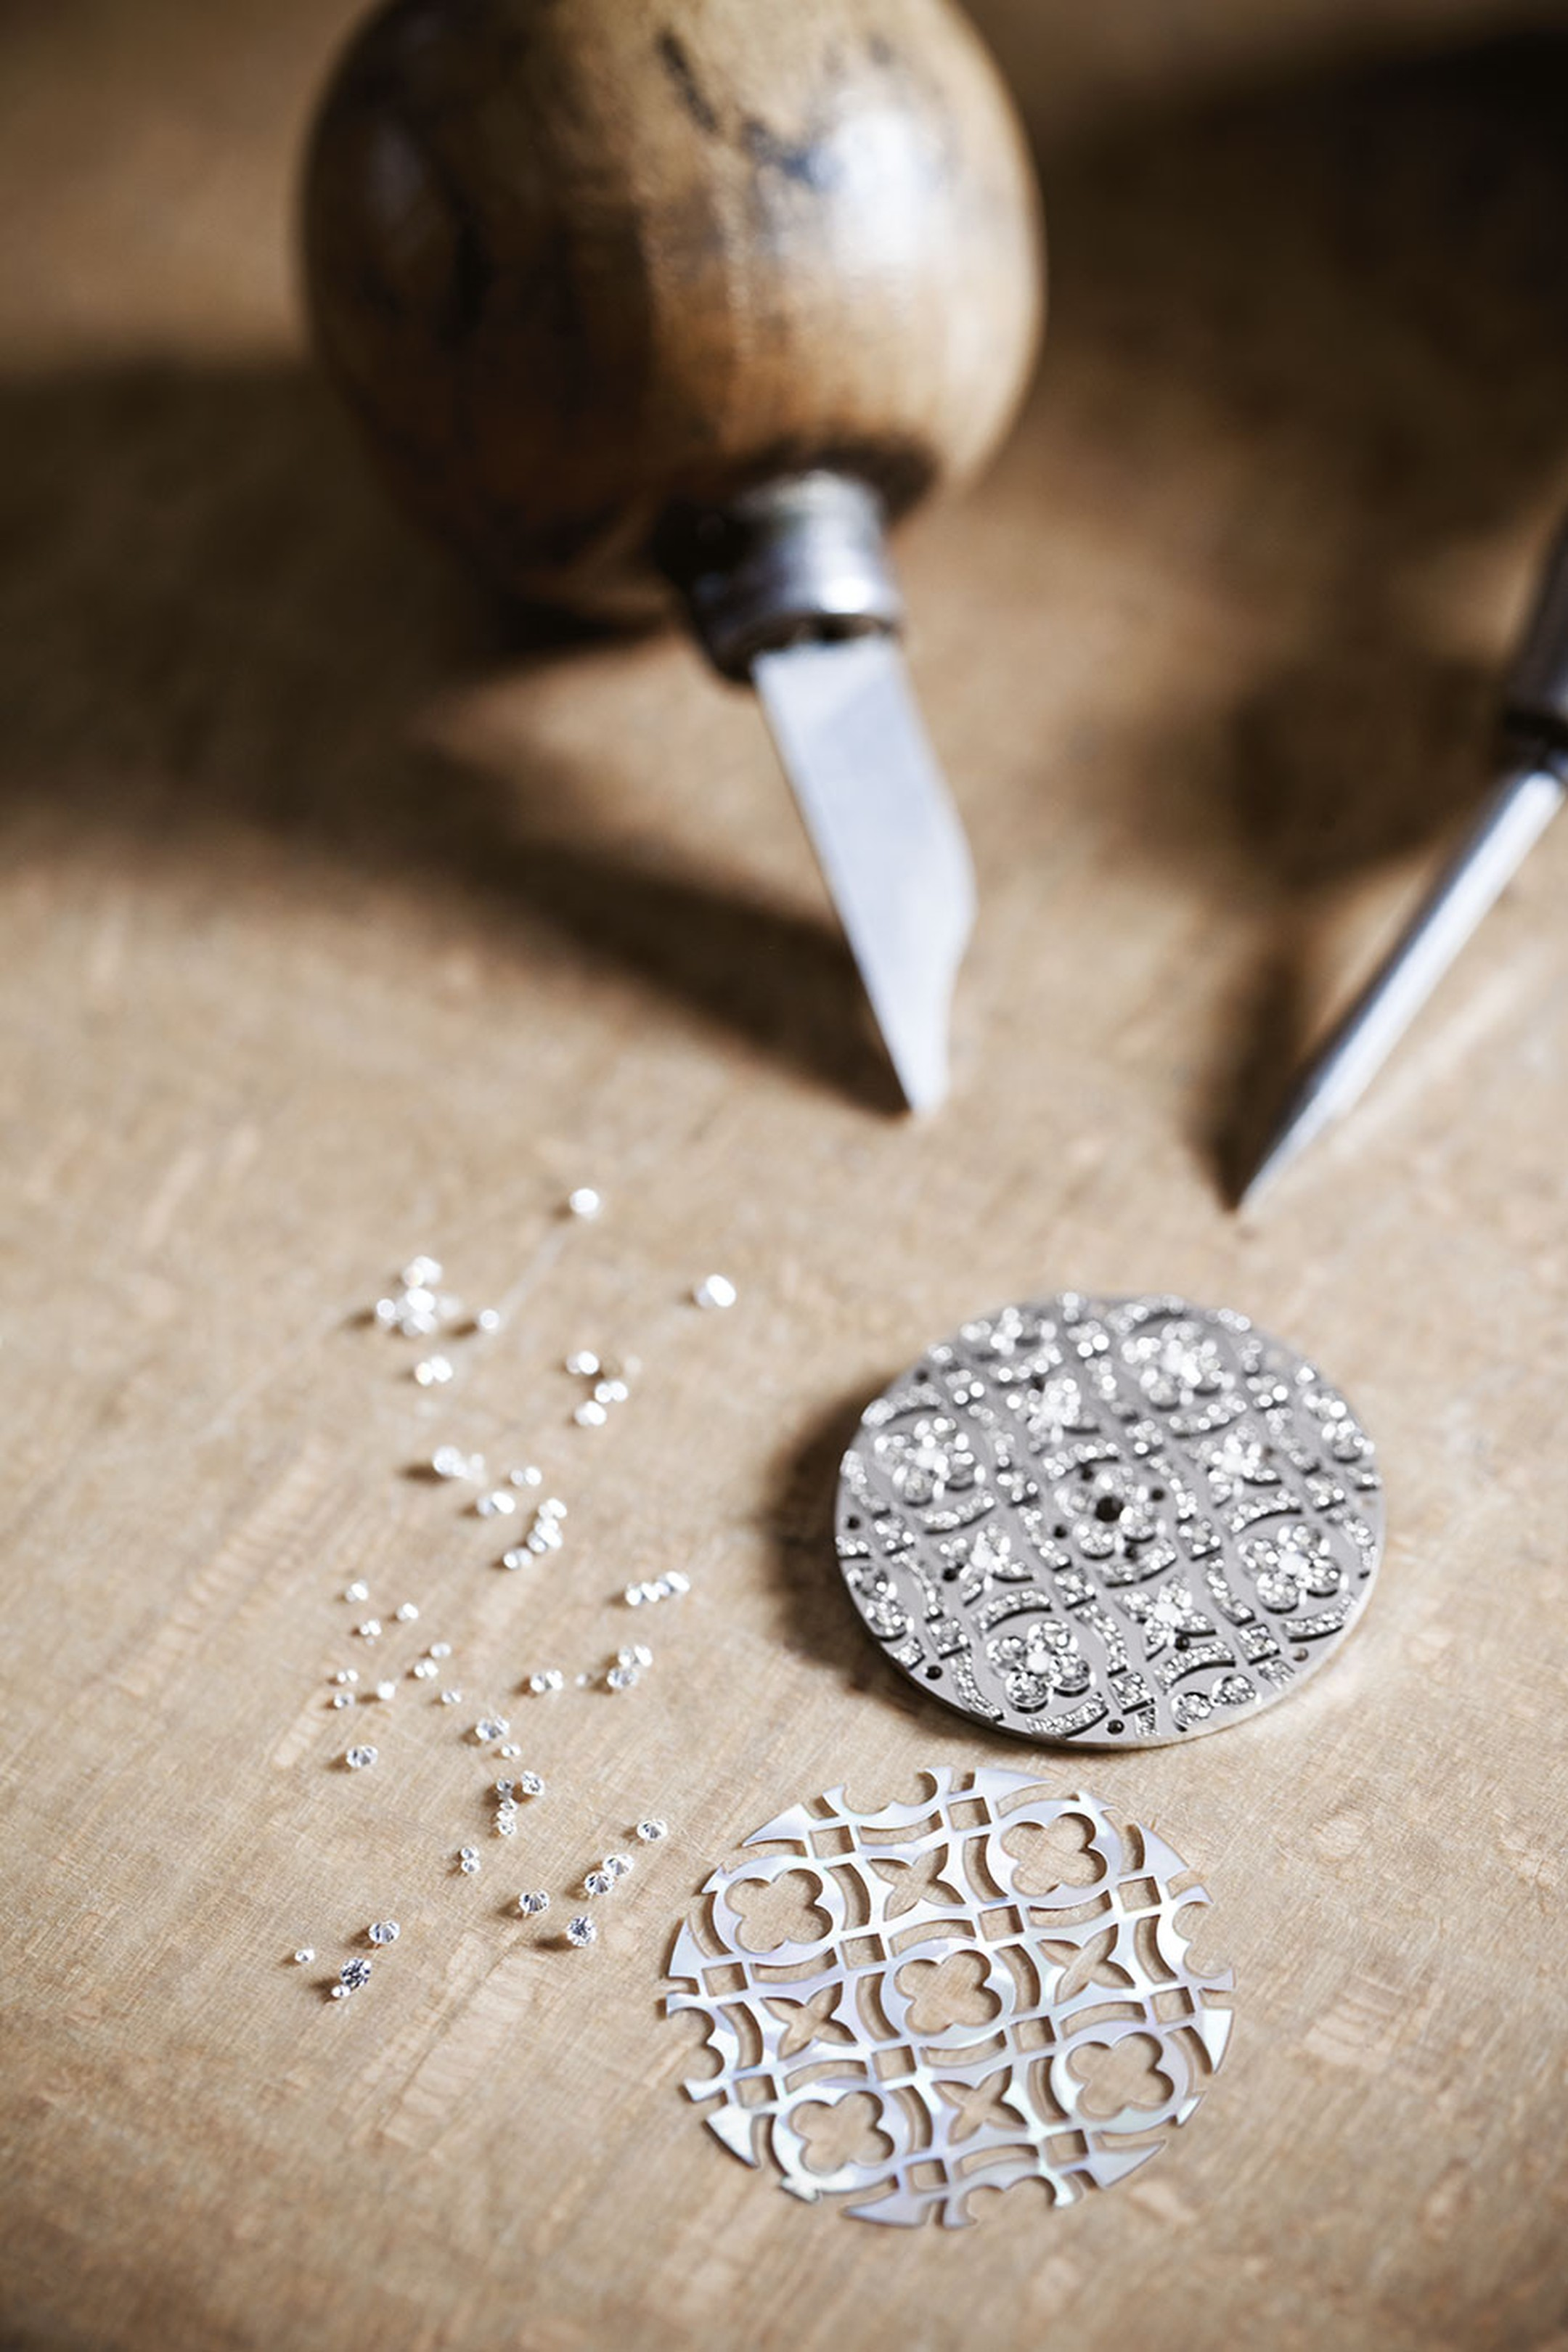 A craftsman at Louis Vuitton's watchmaking atelier setting diamonds on the dial of a Dentelle de Monogram watch